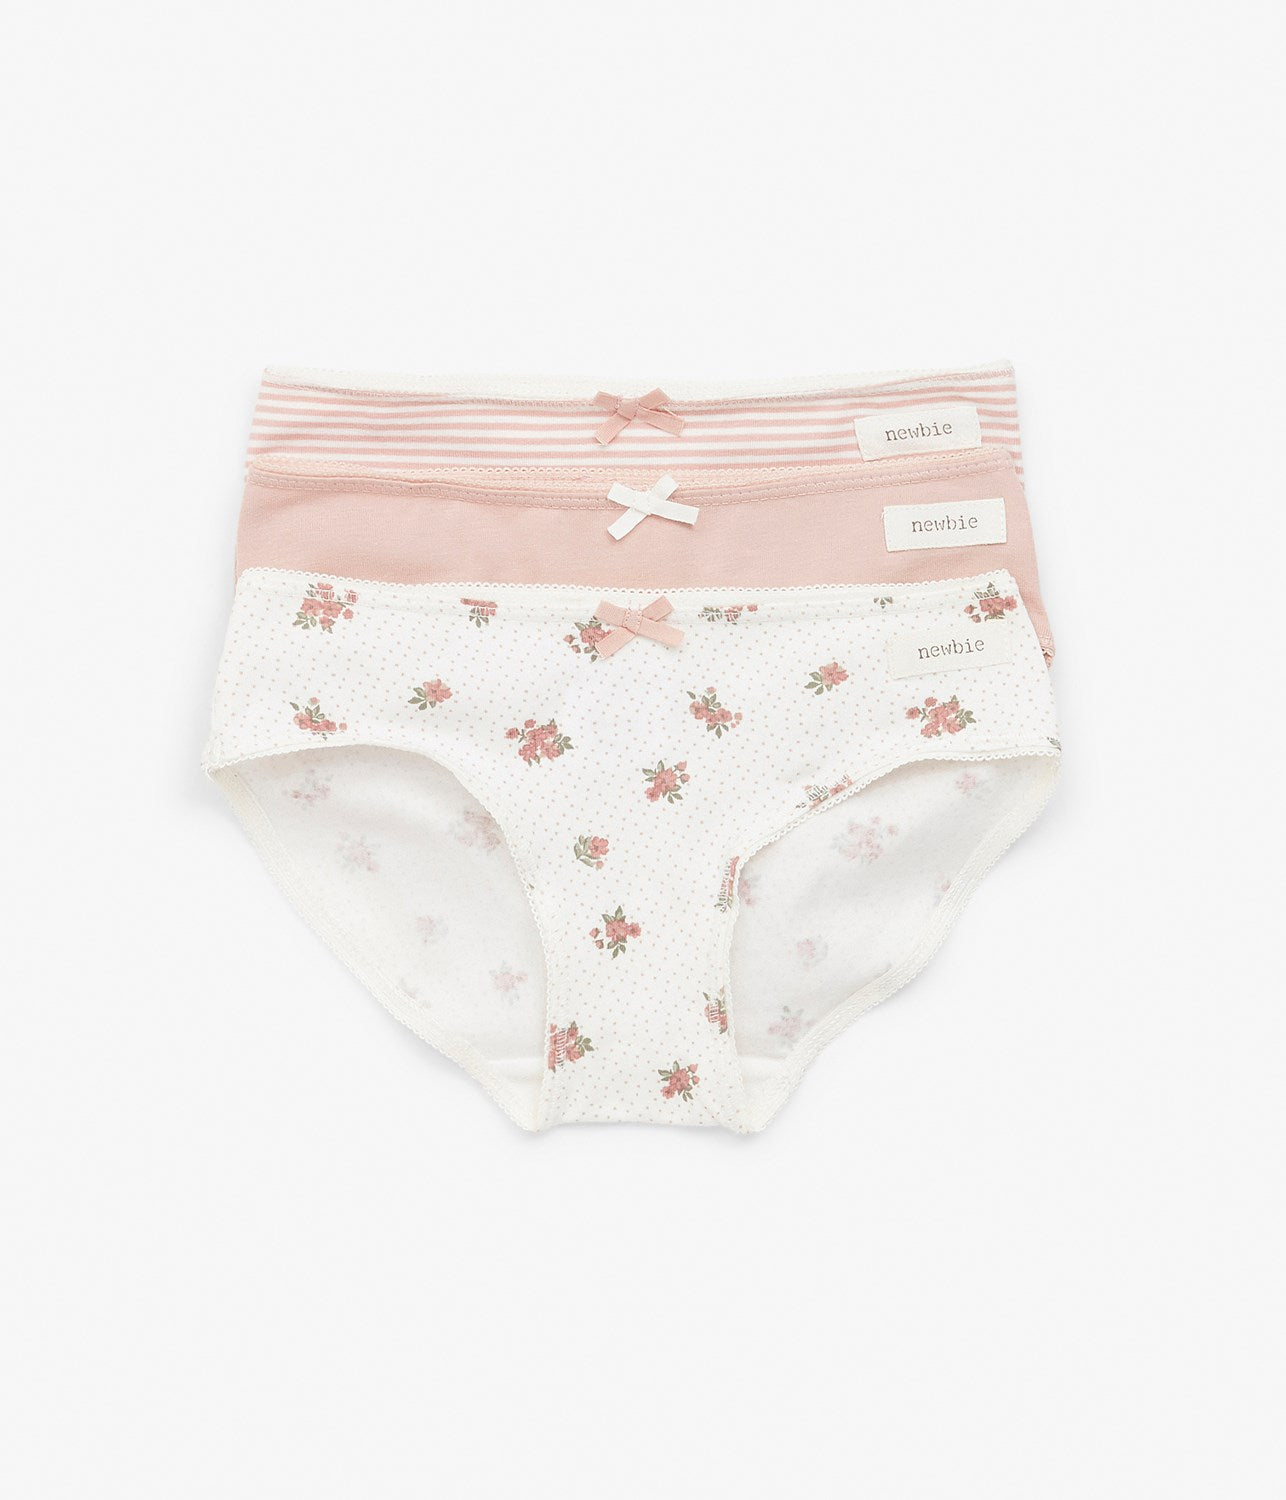 Kids pink & white printed underwear 3-pack